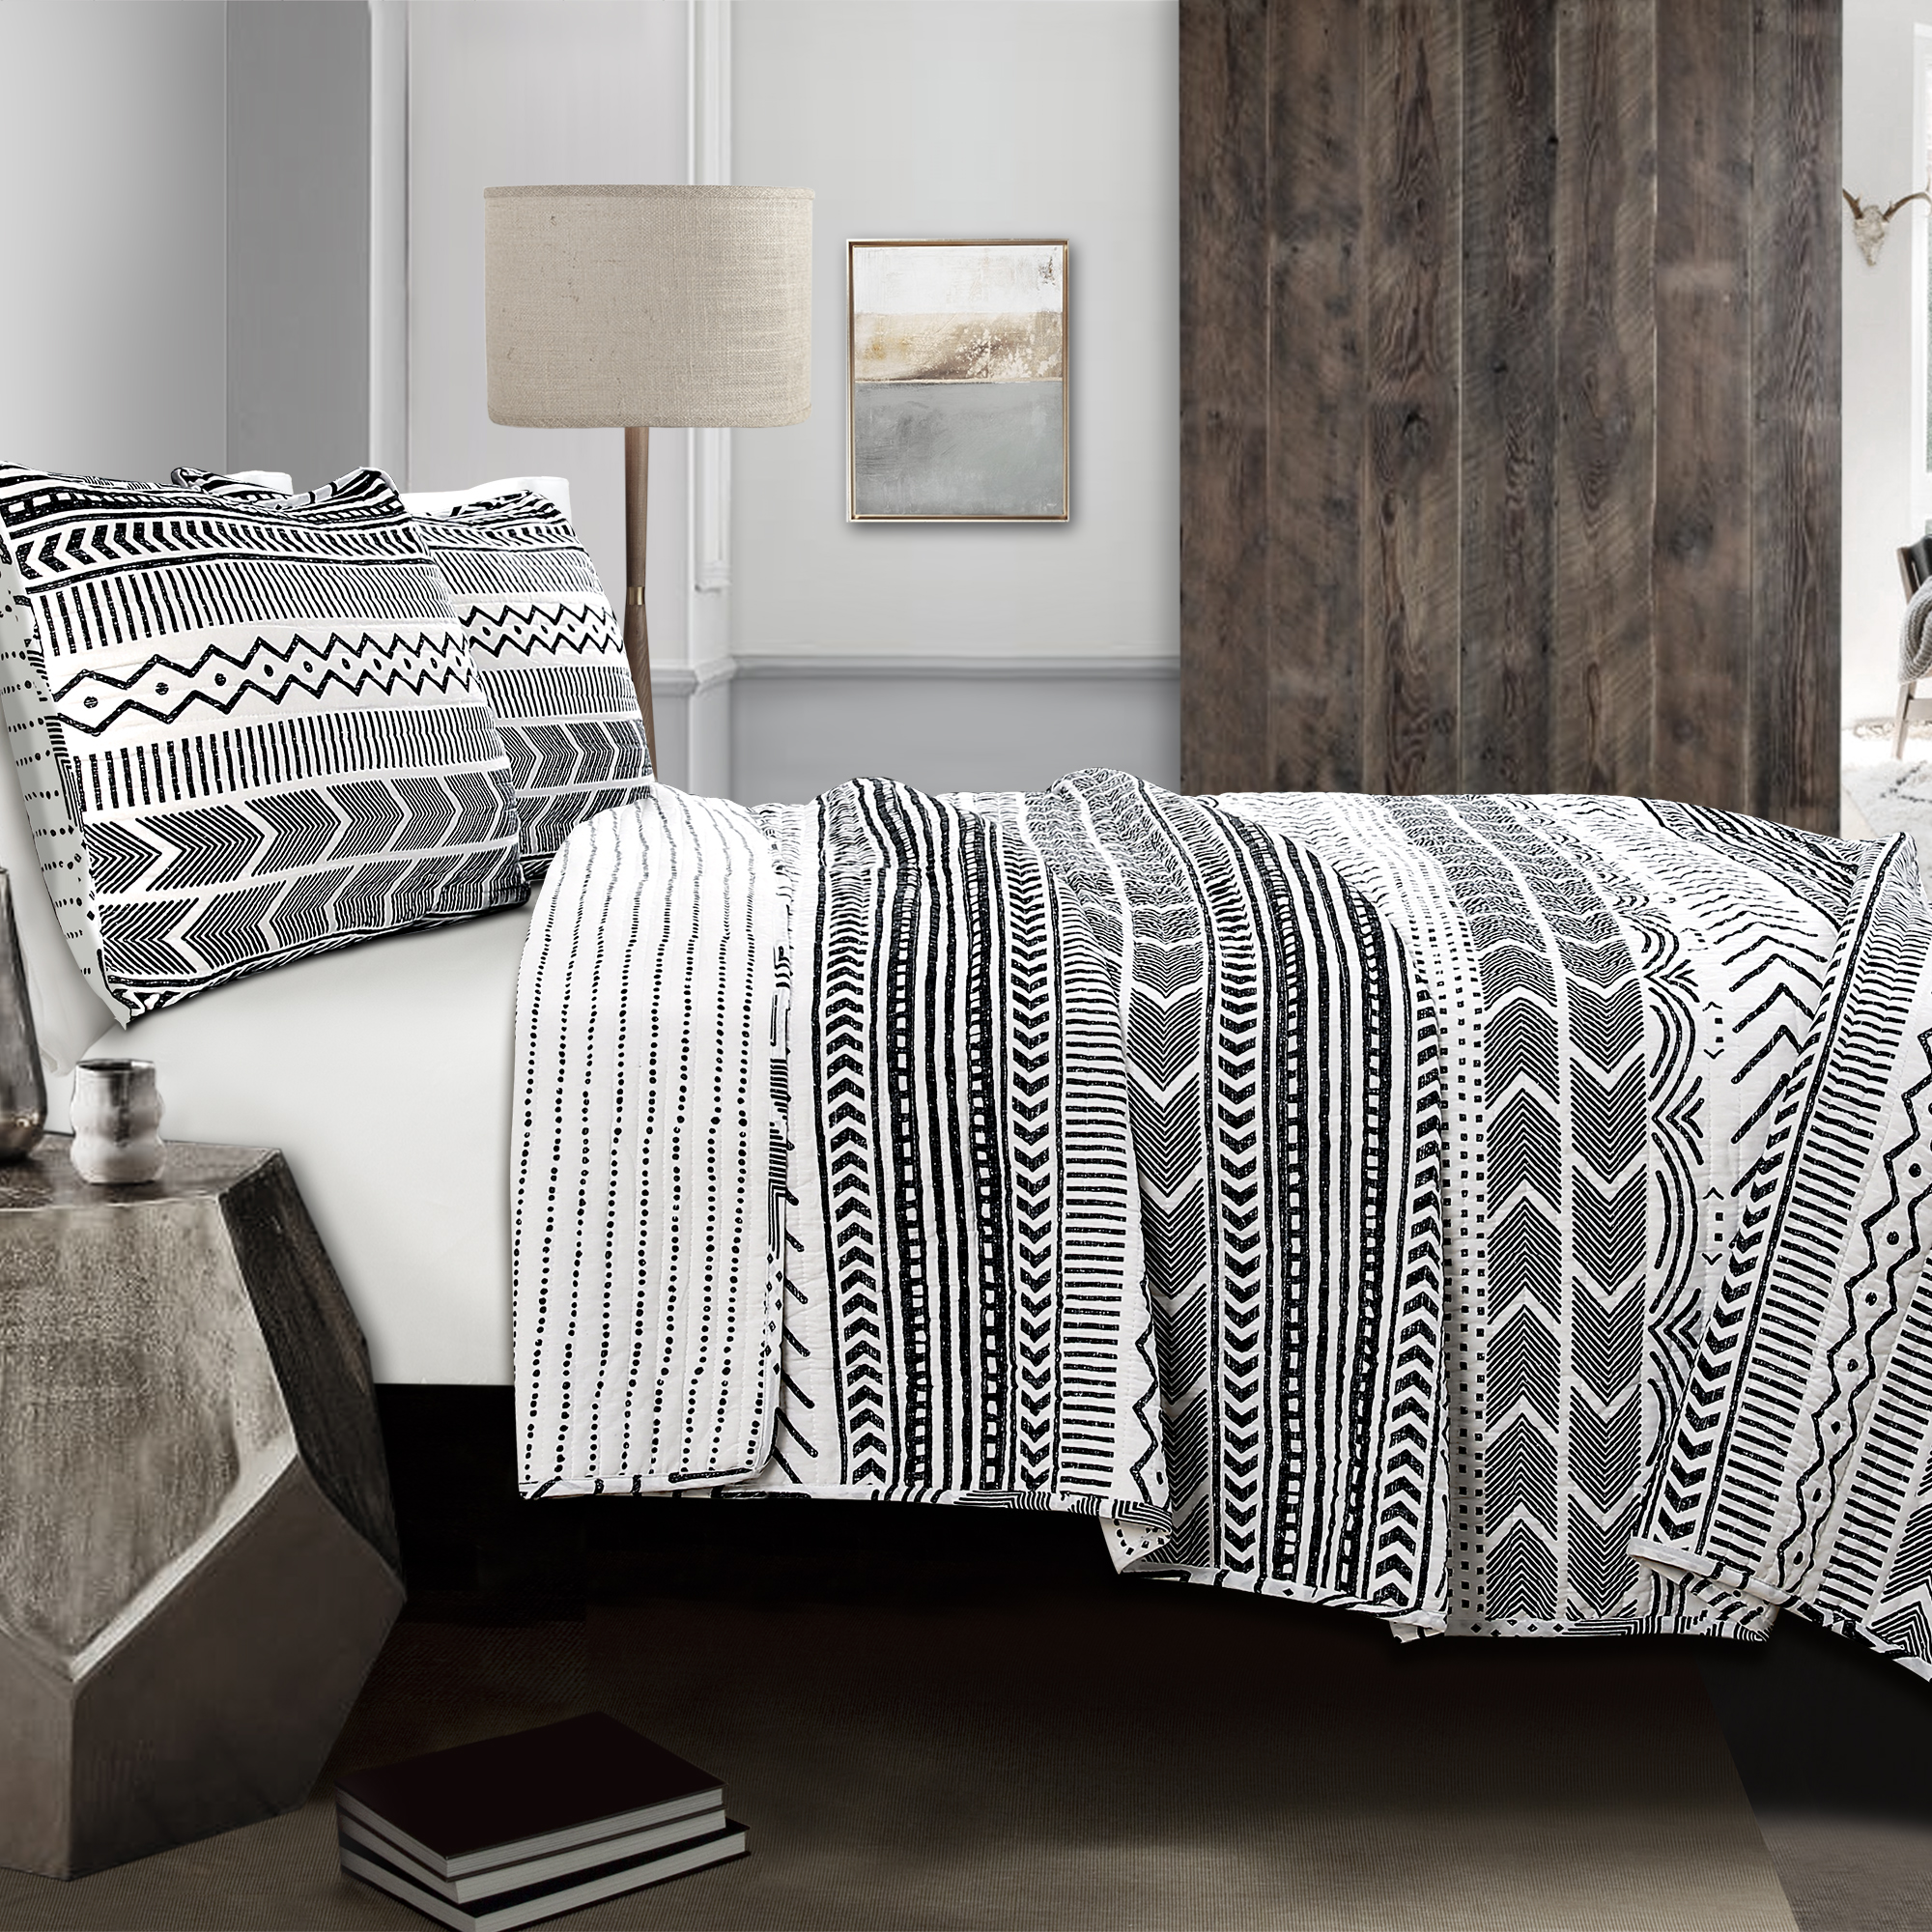 Hygge Geo Quilt Black/White 3Pc Set King